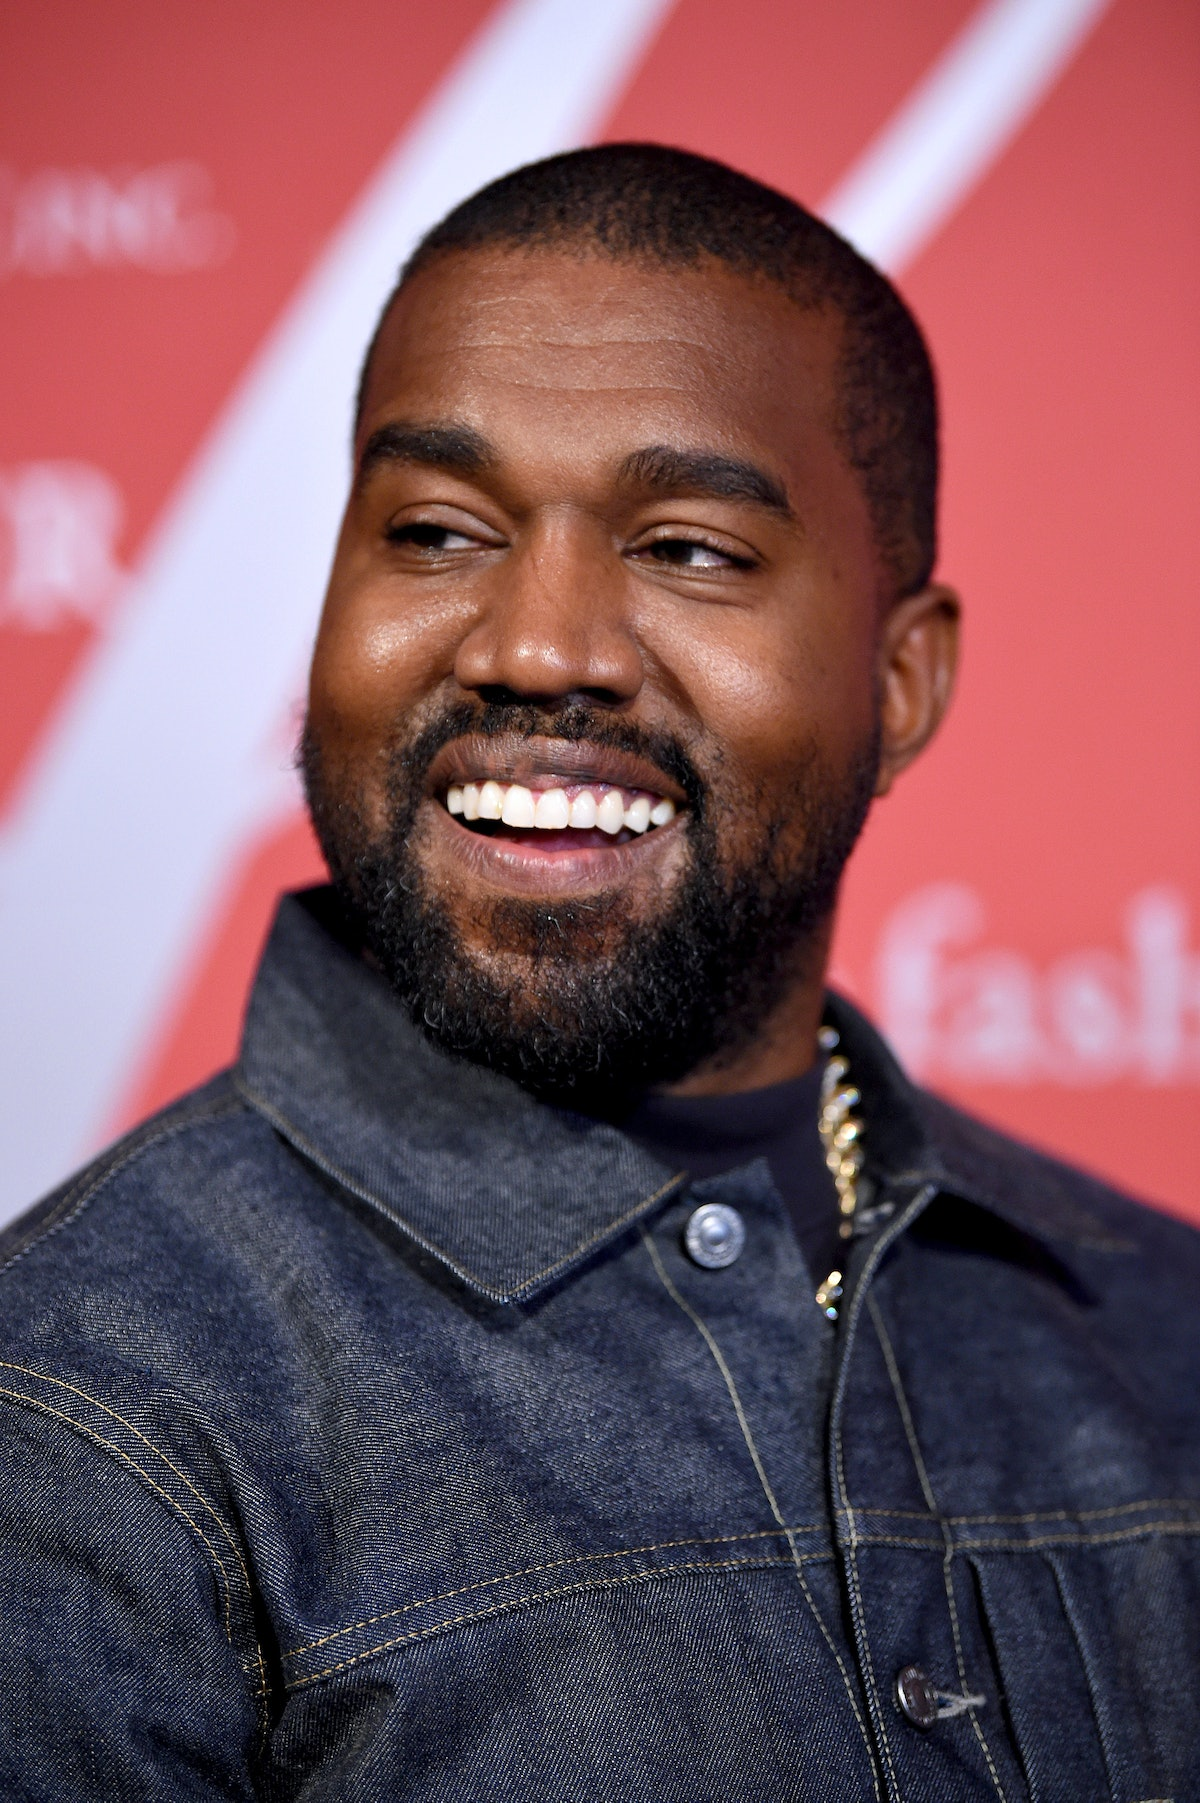 Kanye West deleted all of his Instagram posts but left a photo of a house.